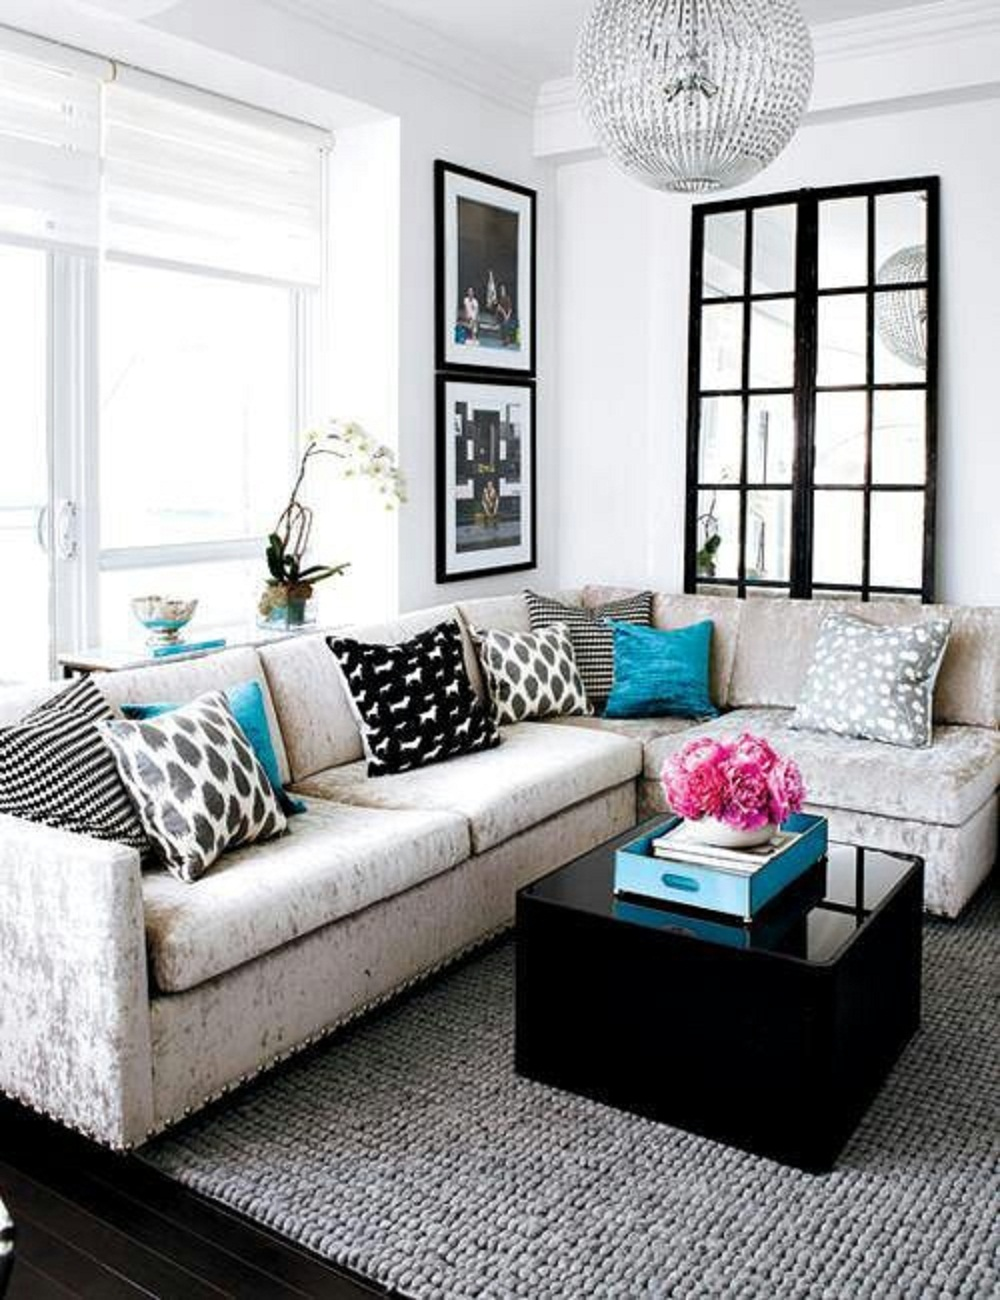 l living room ideas minimalist small living room interior with L shaped sofa set and  1300 X 1000